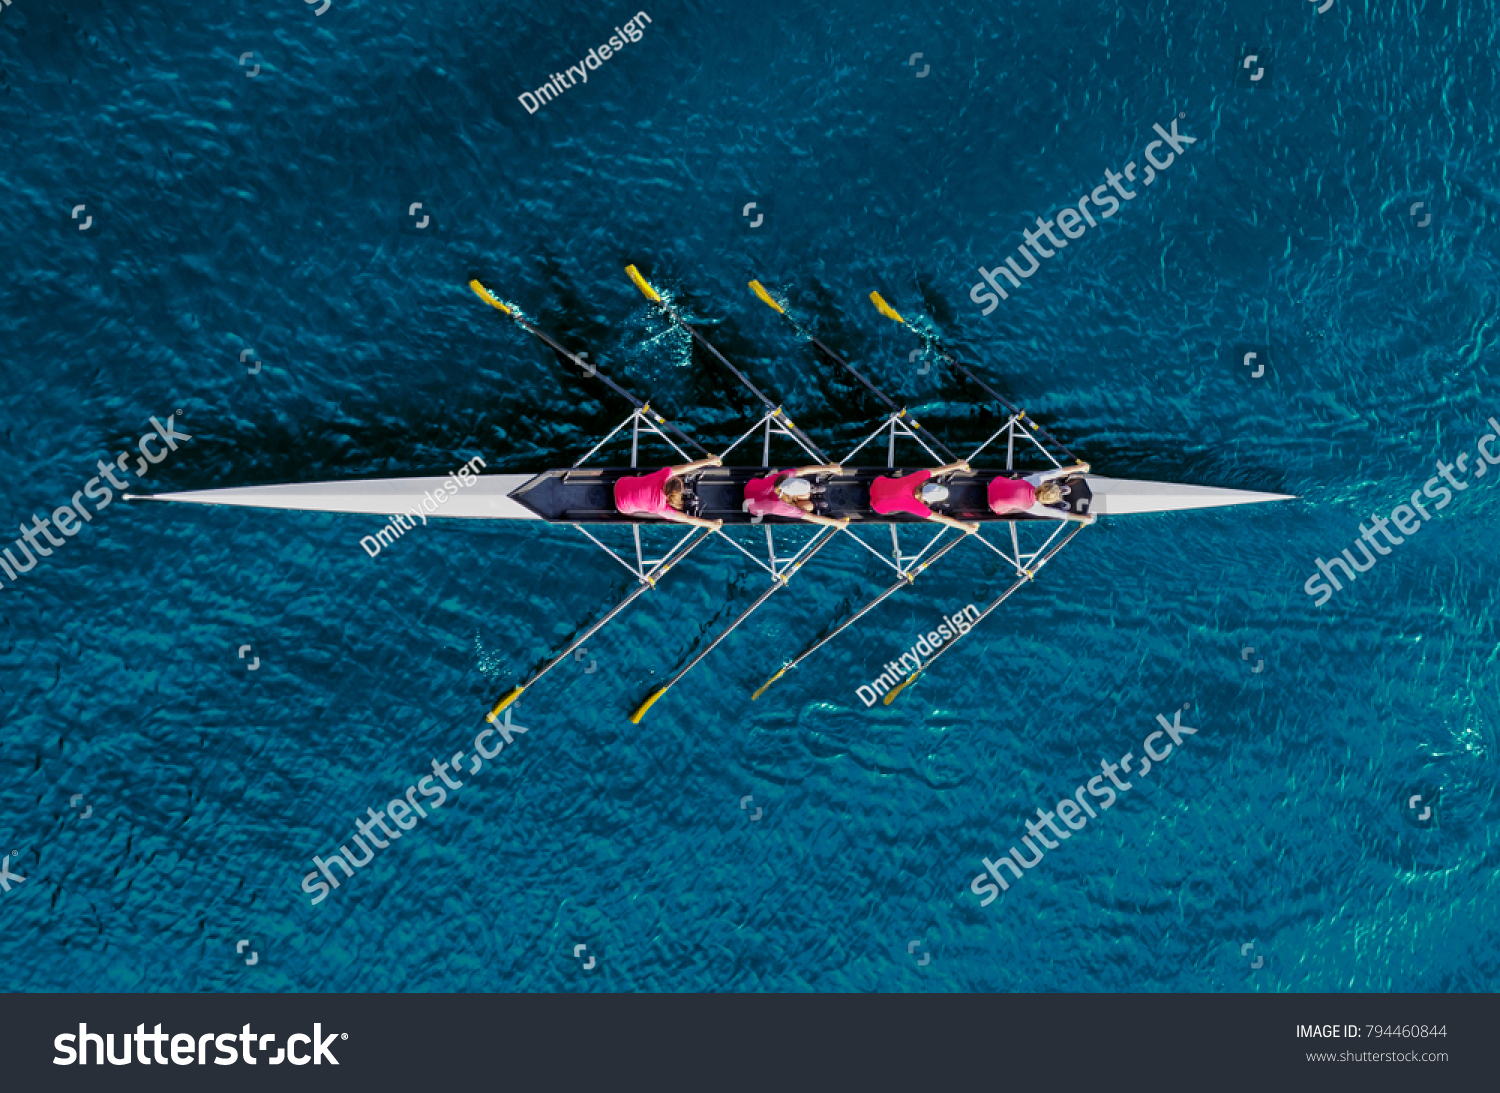 Women's rowing team on blue water, top view #794460844 - 123PhotoFree.com